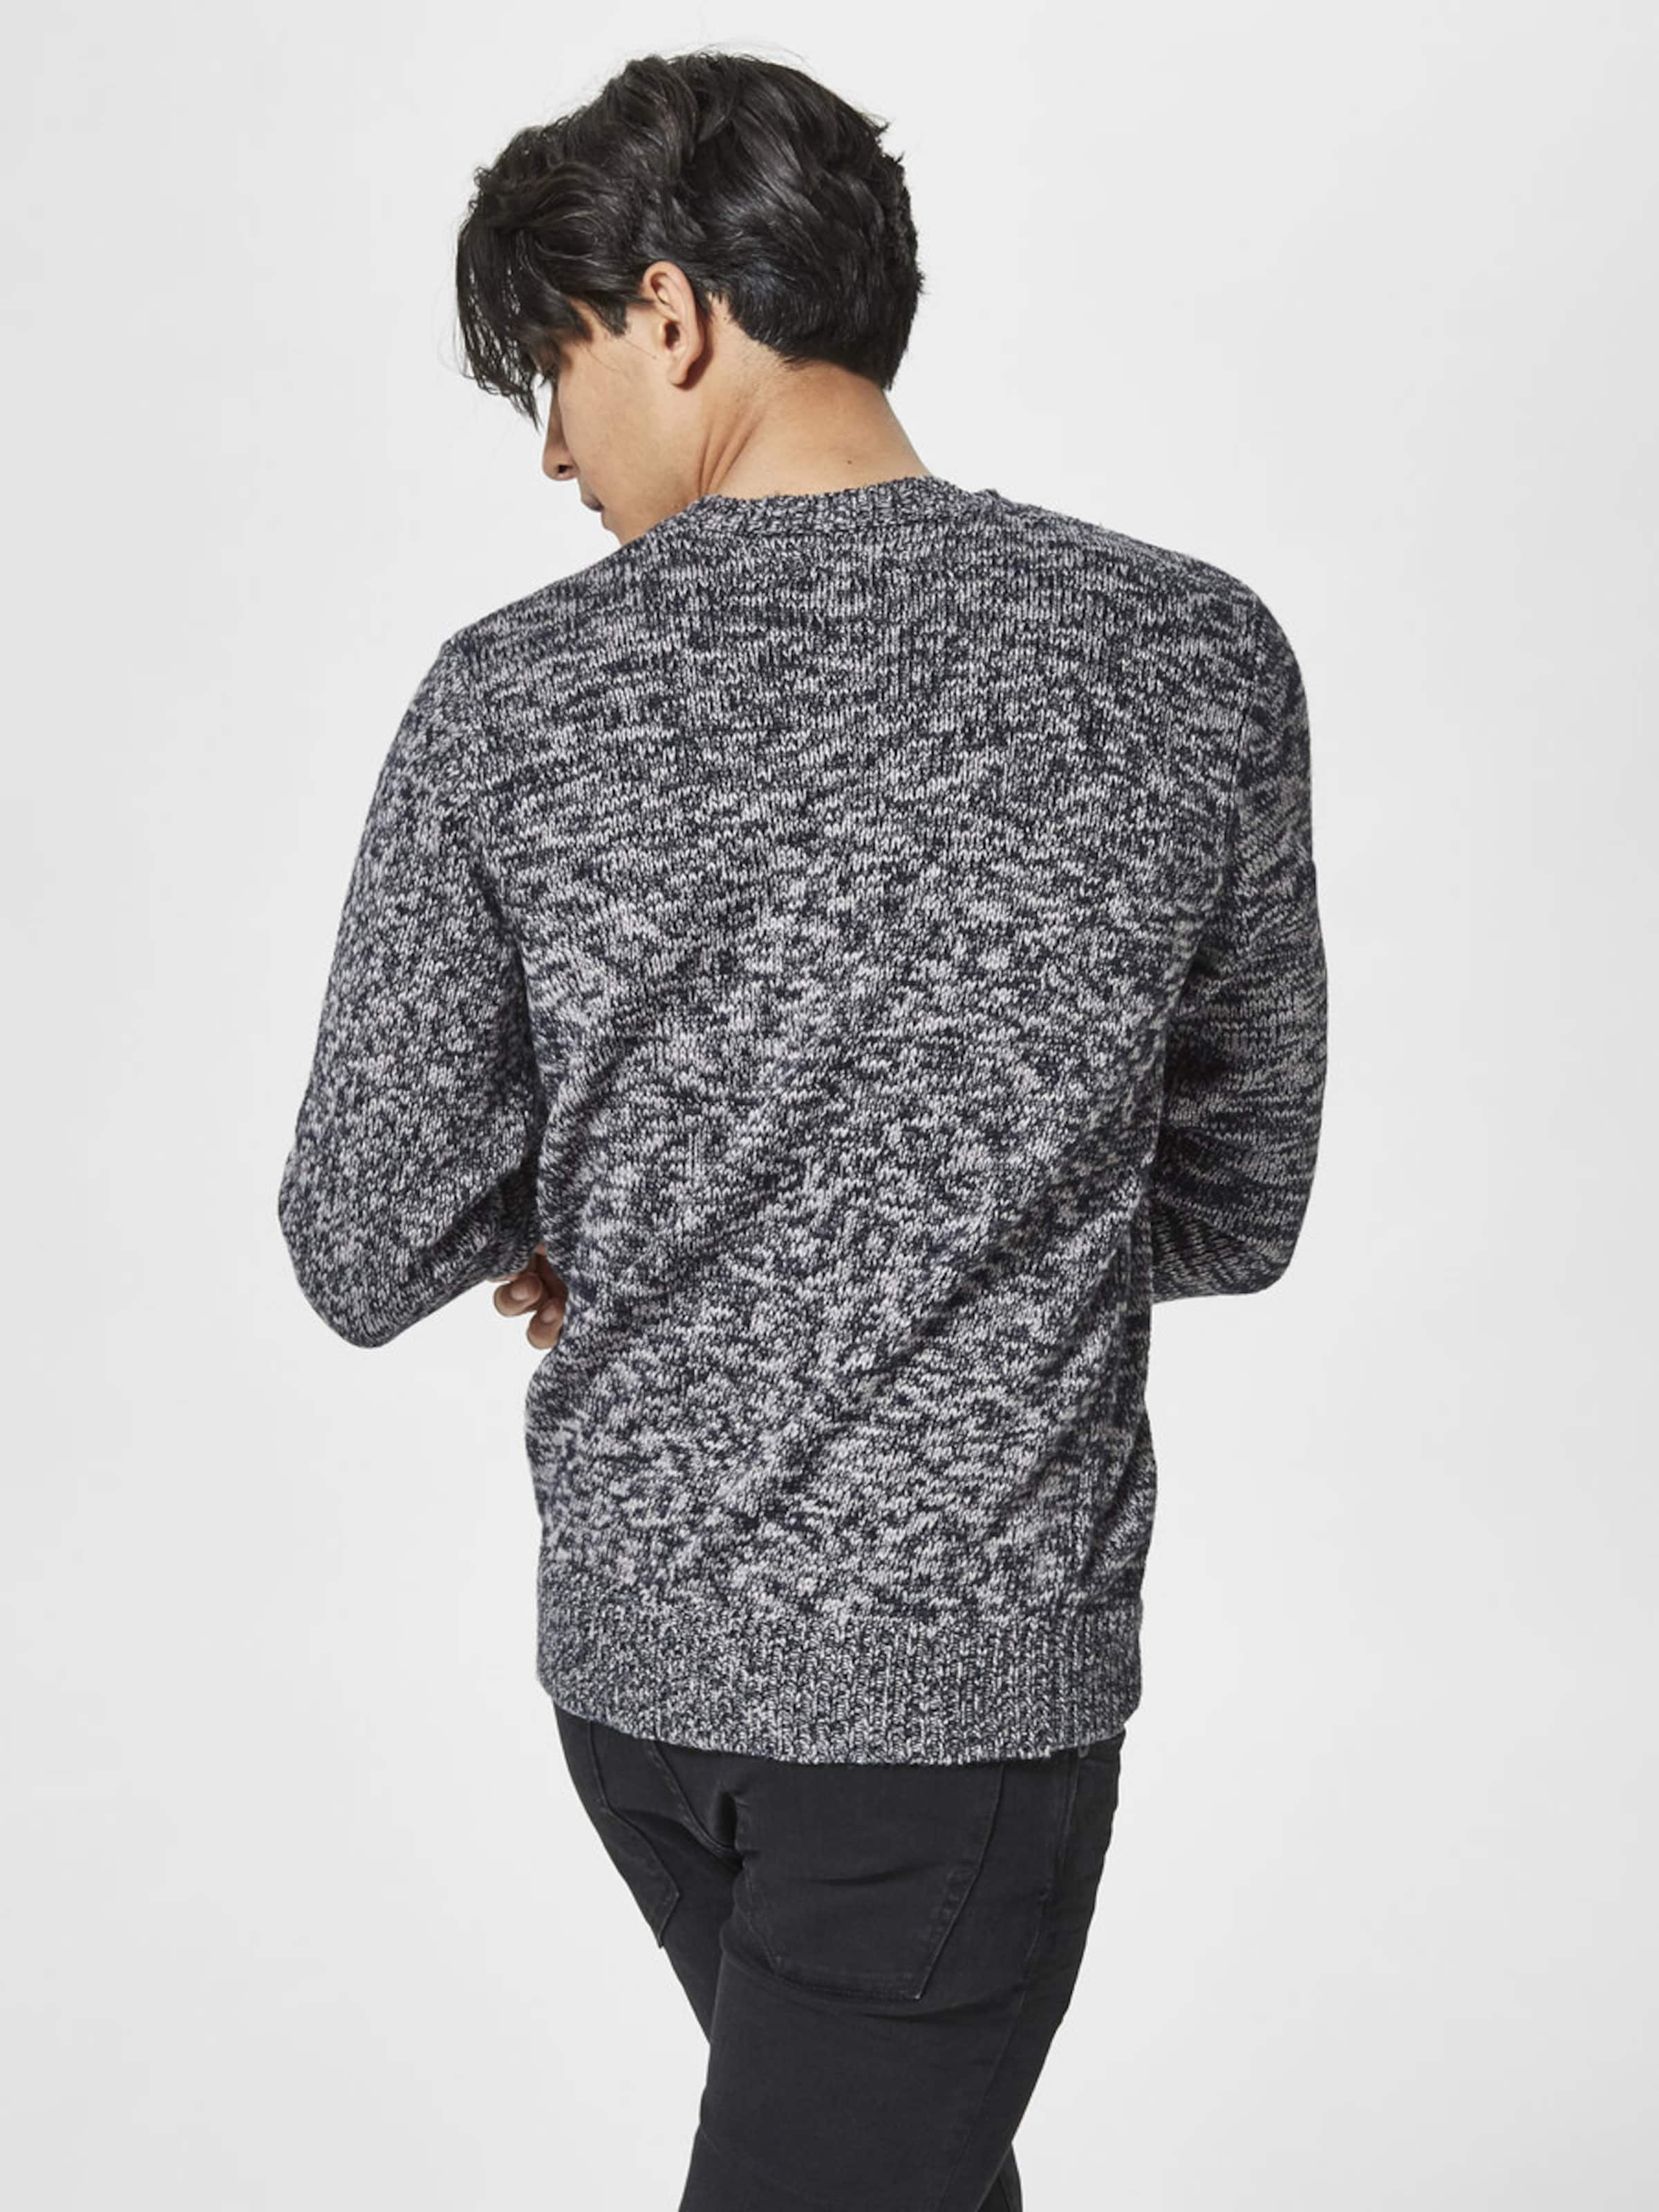 Neck SELECTED HOMME HOMME Sweatshirt Crew SELECTED xBgZqRI